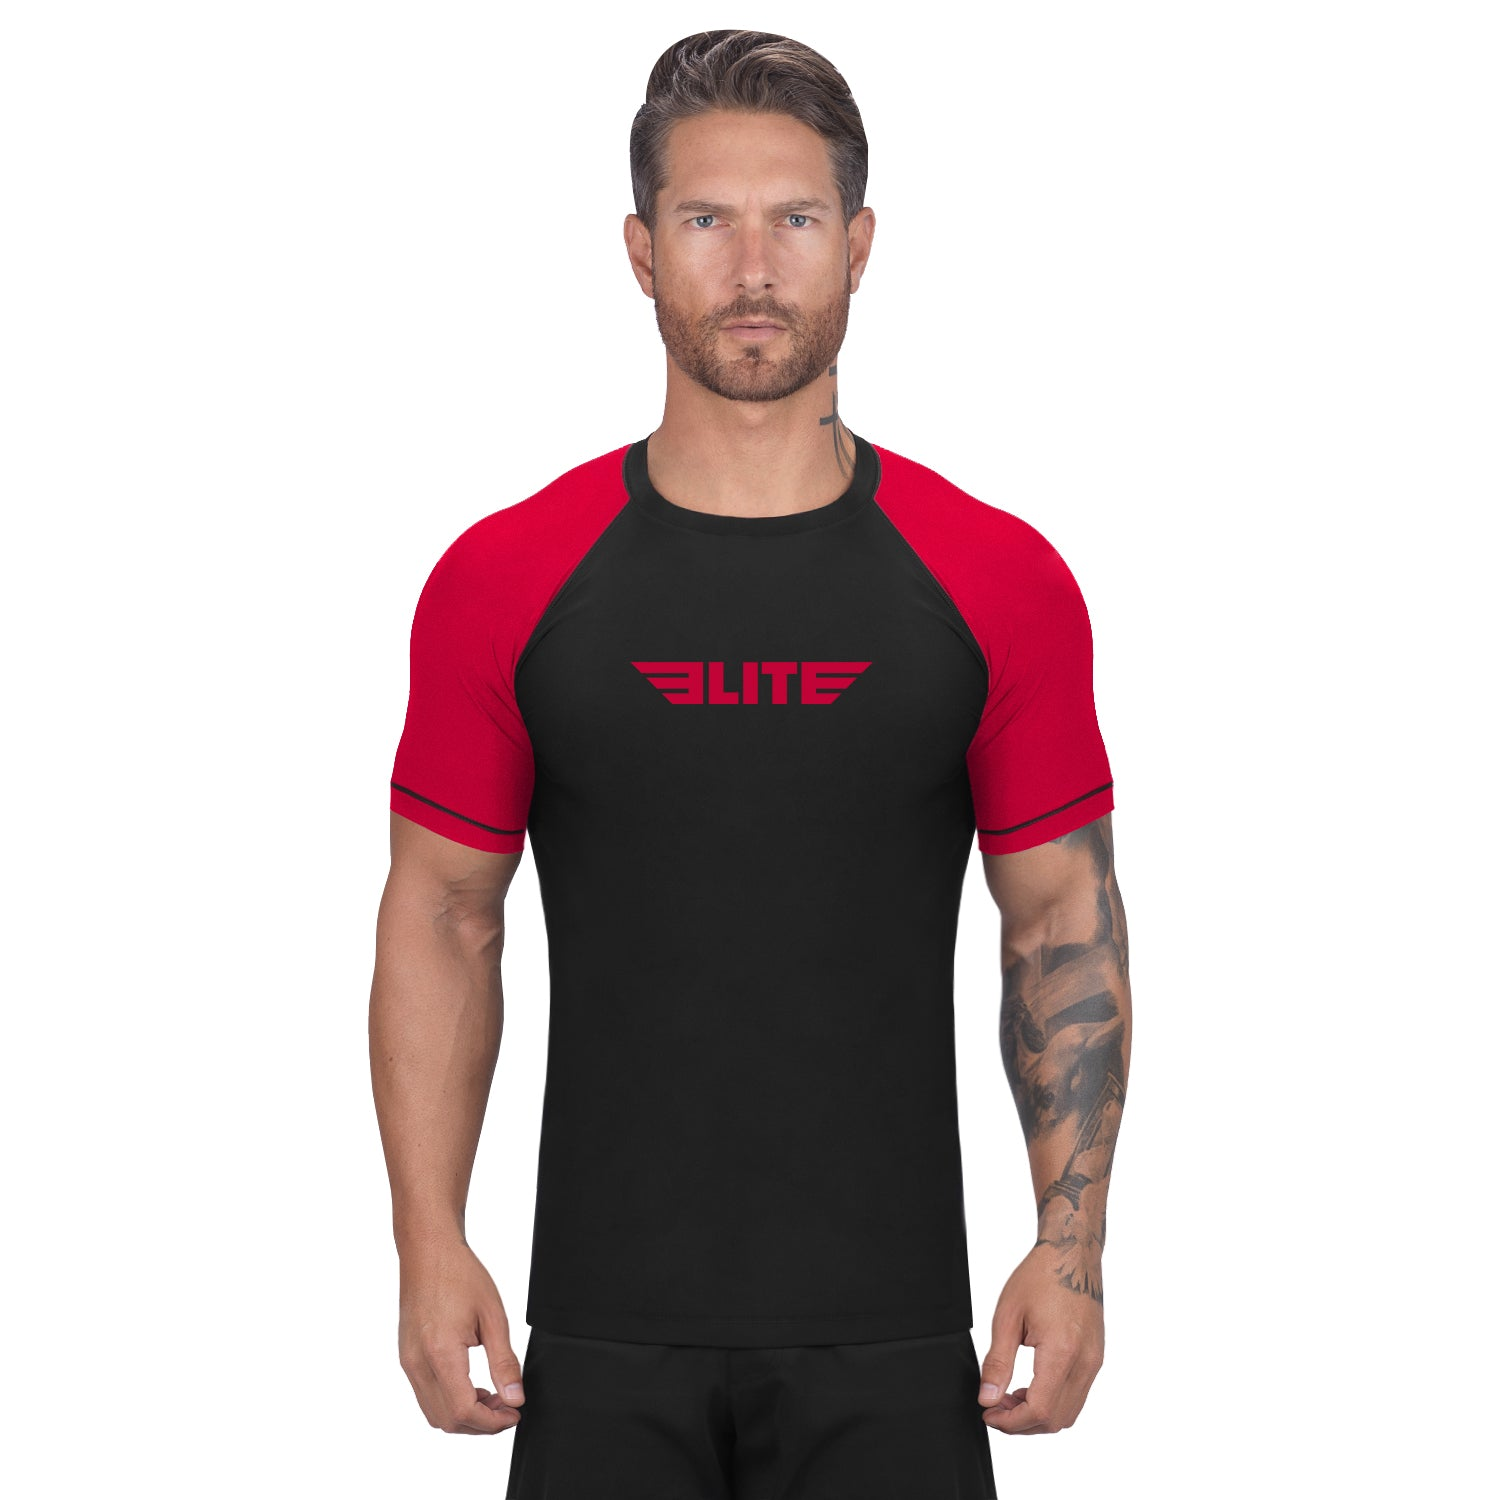 Elite Sports Standard Black/Red Short Sleeve Brazilian Jiu Jitsu BJJ Rash Guard